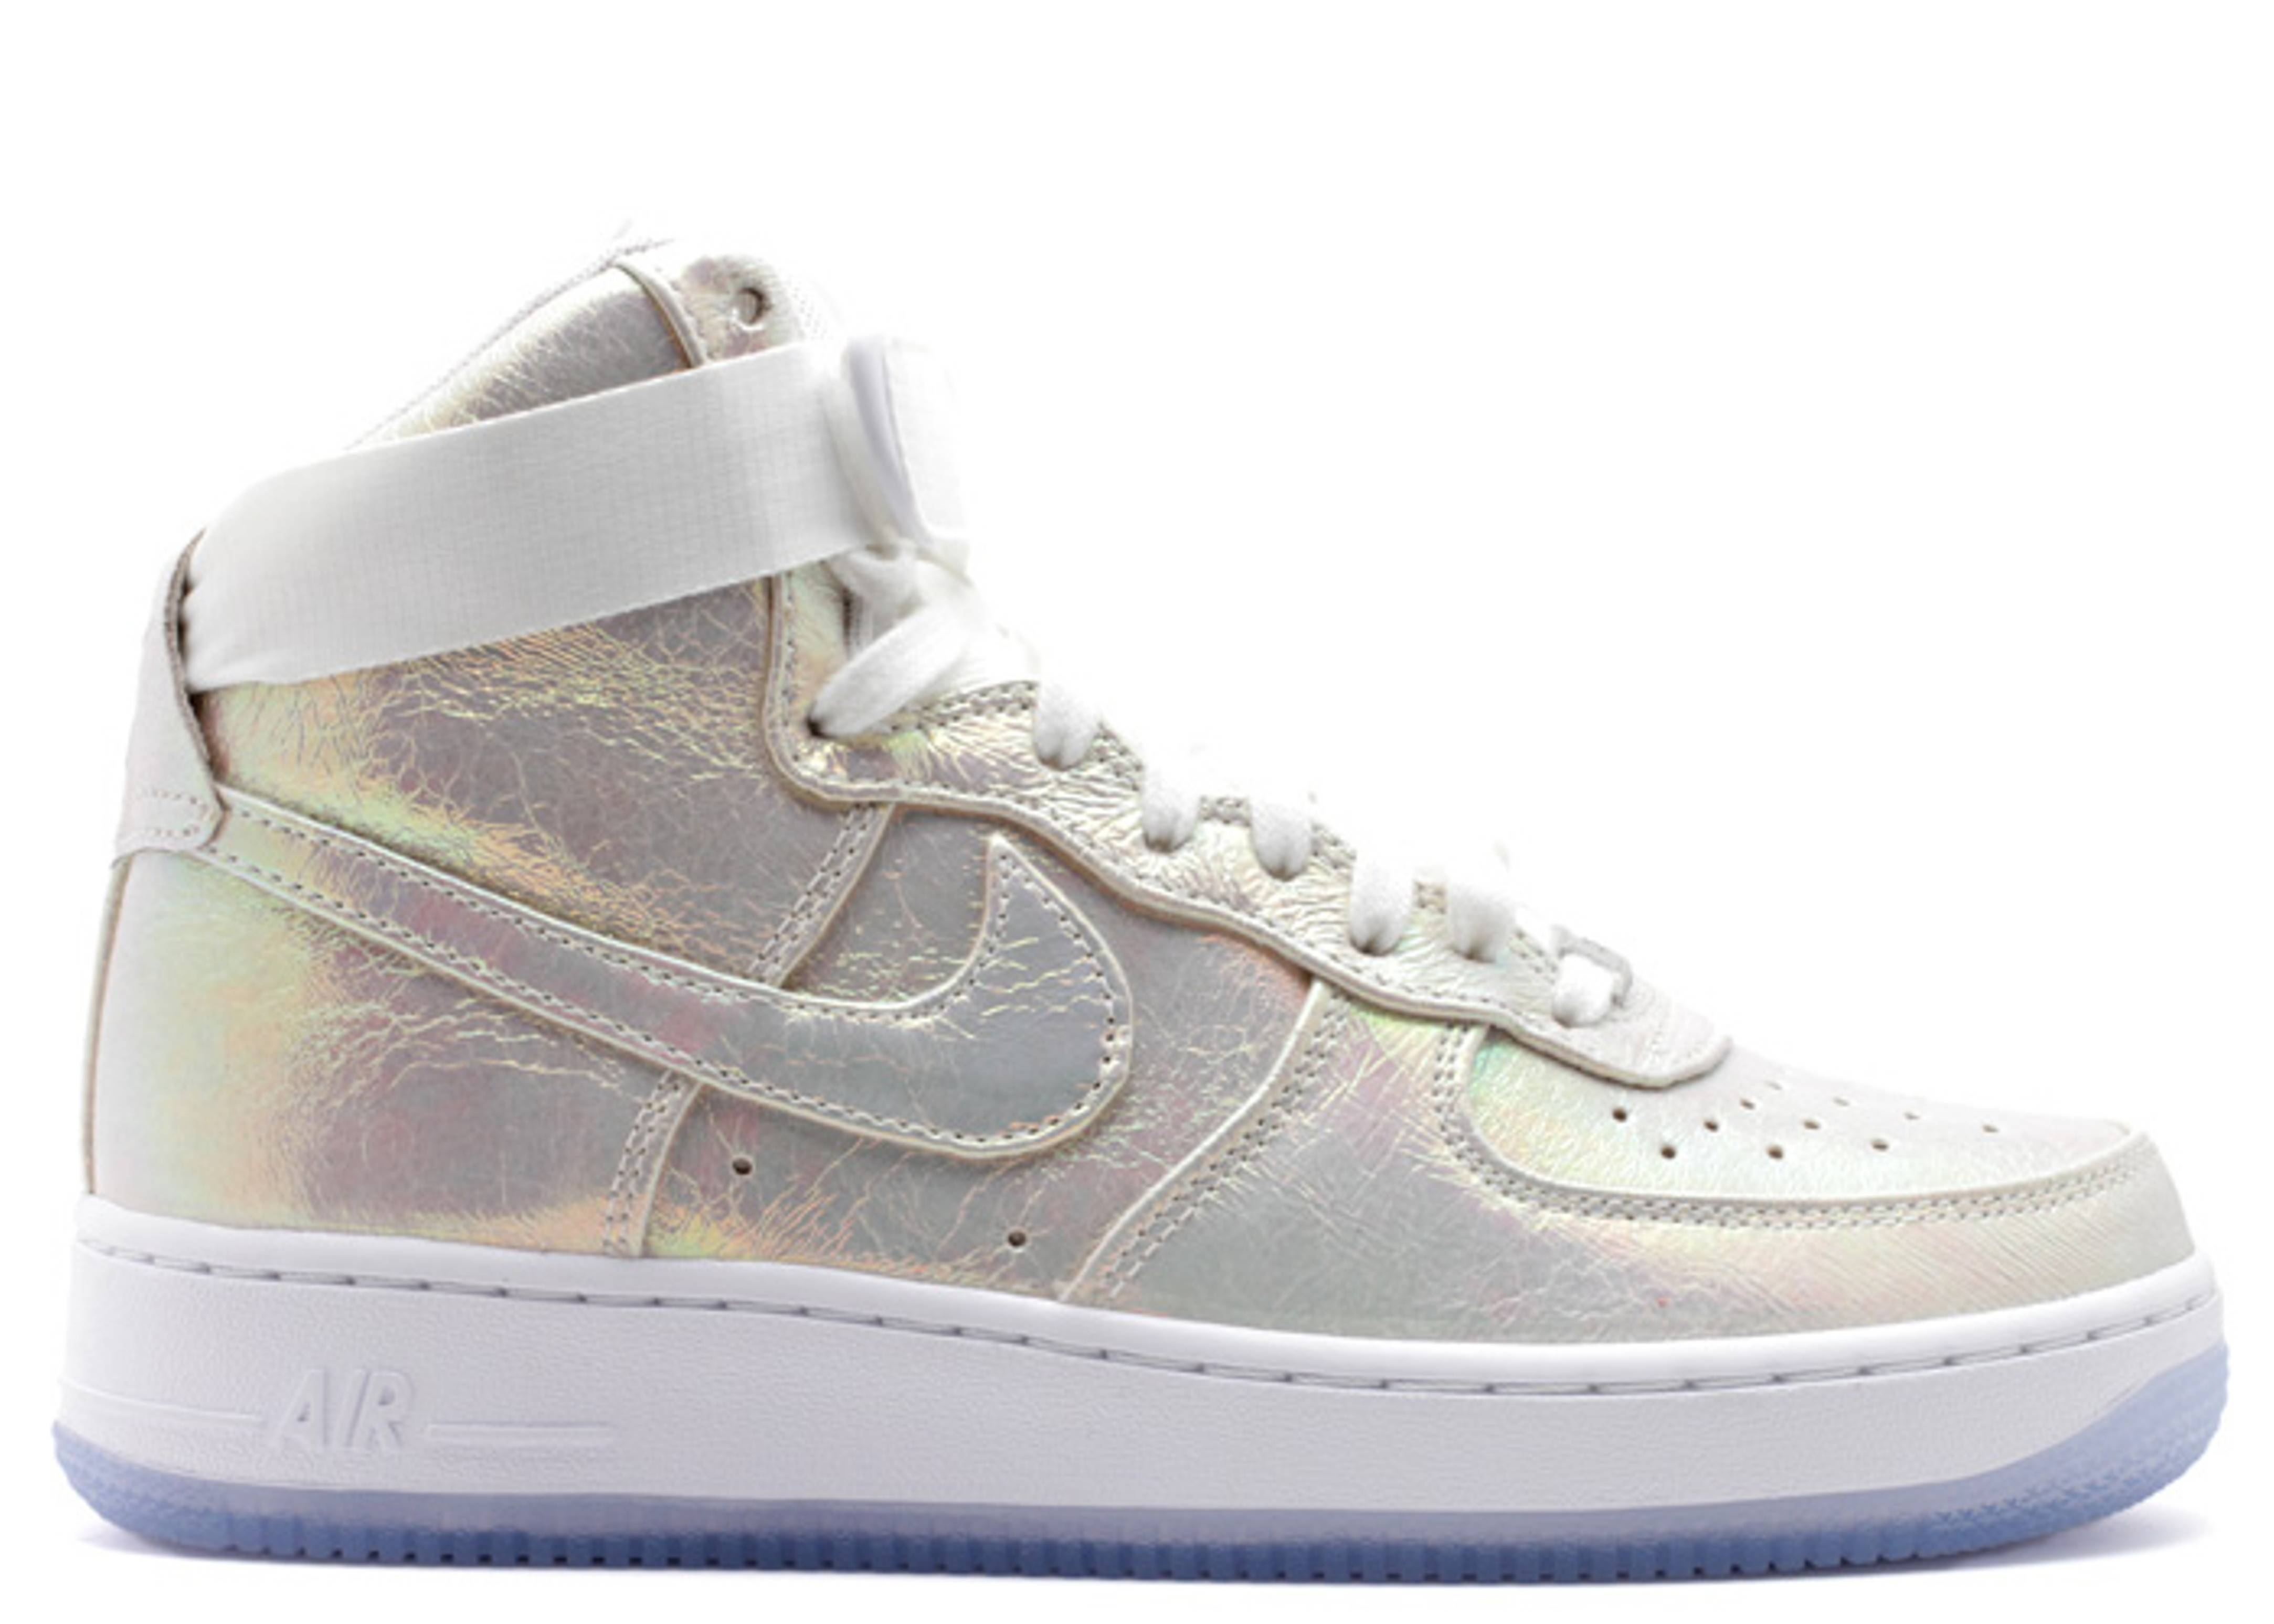 nike. w's air force one hi prm qs iridescent